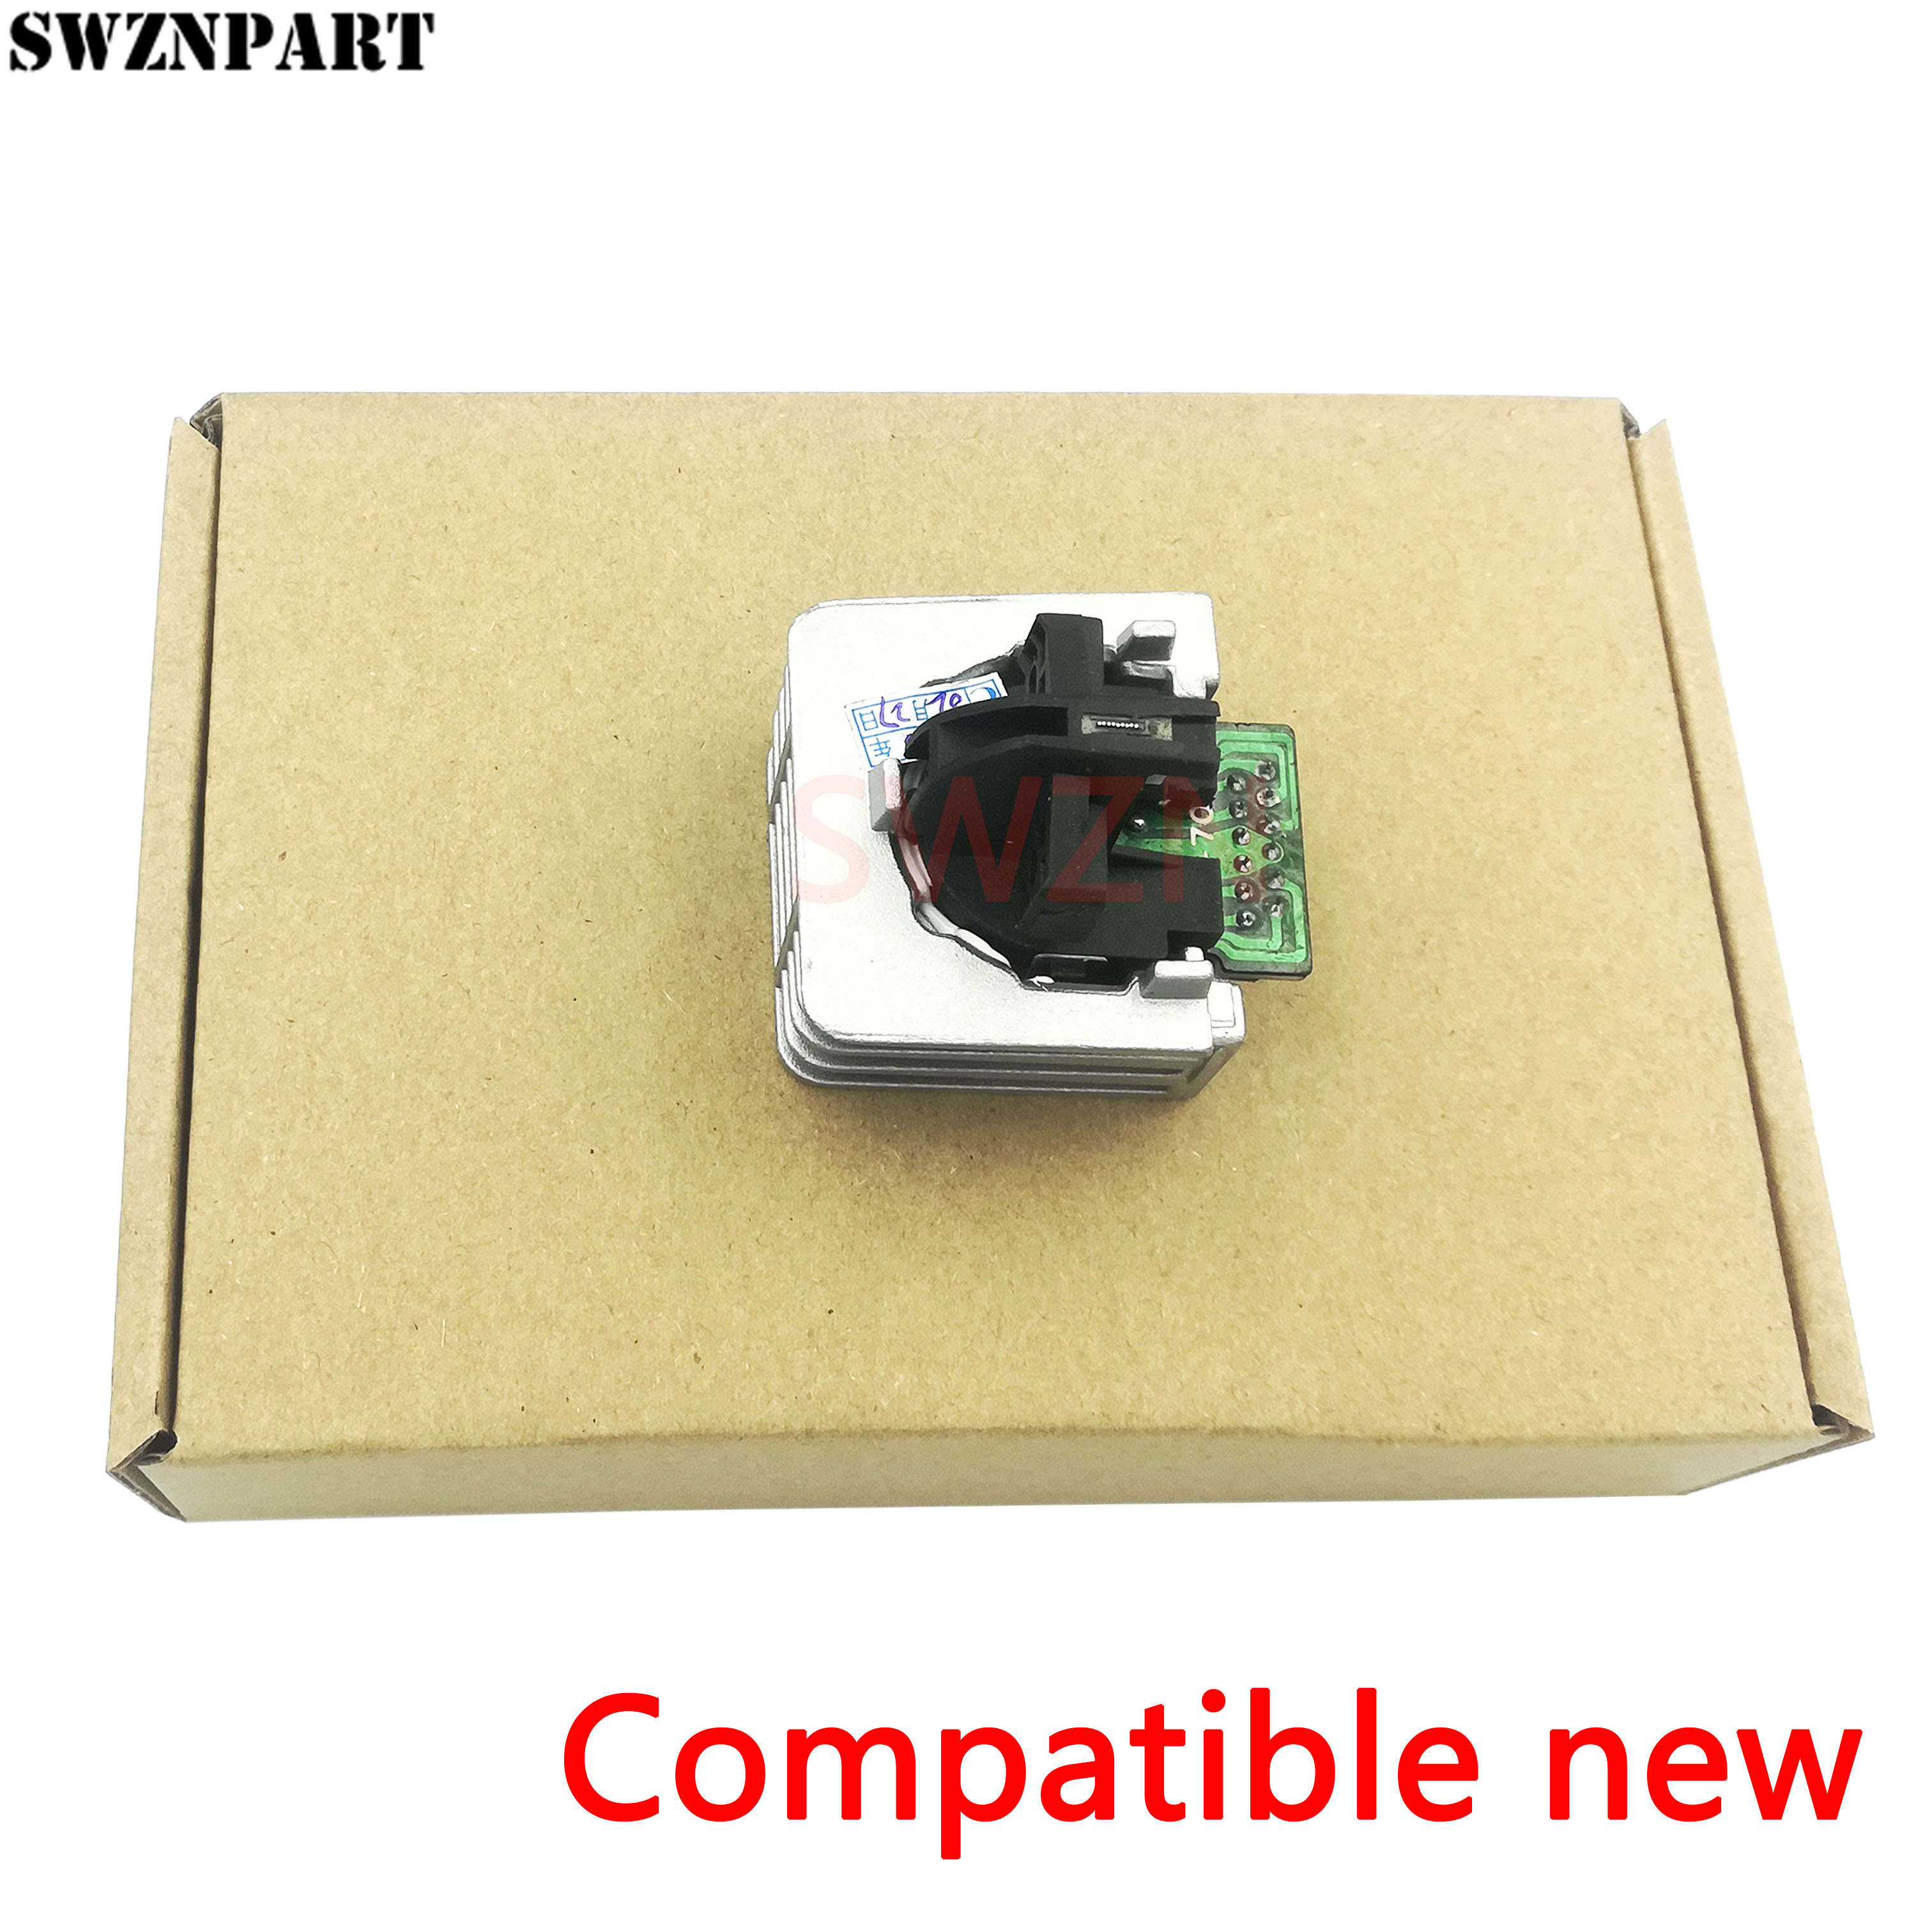 Print Head For Epson LX310 LX350 LX-310 LX-350 Compatible New Free Shipping Printhead